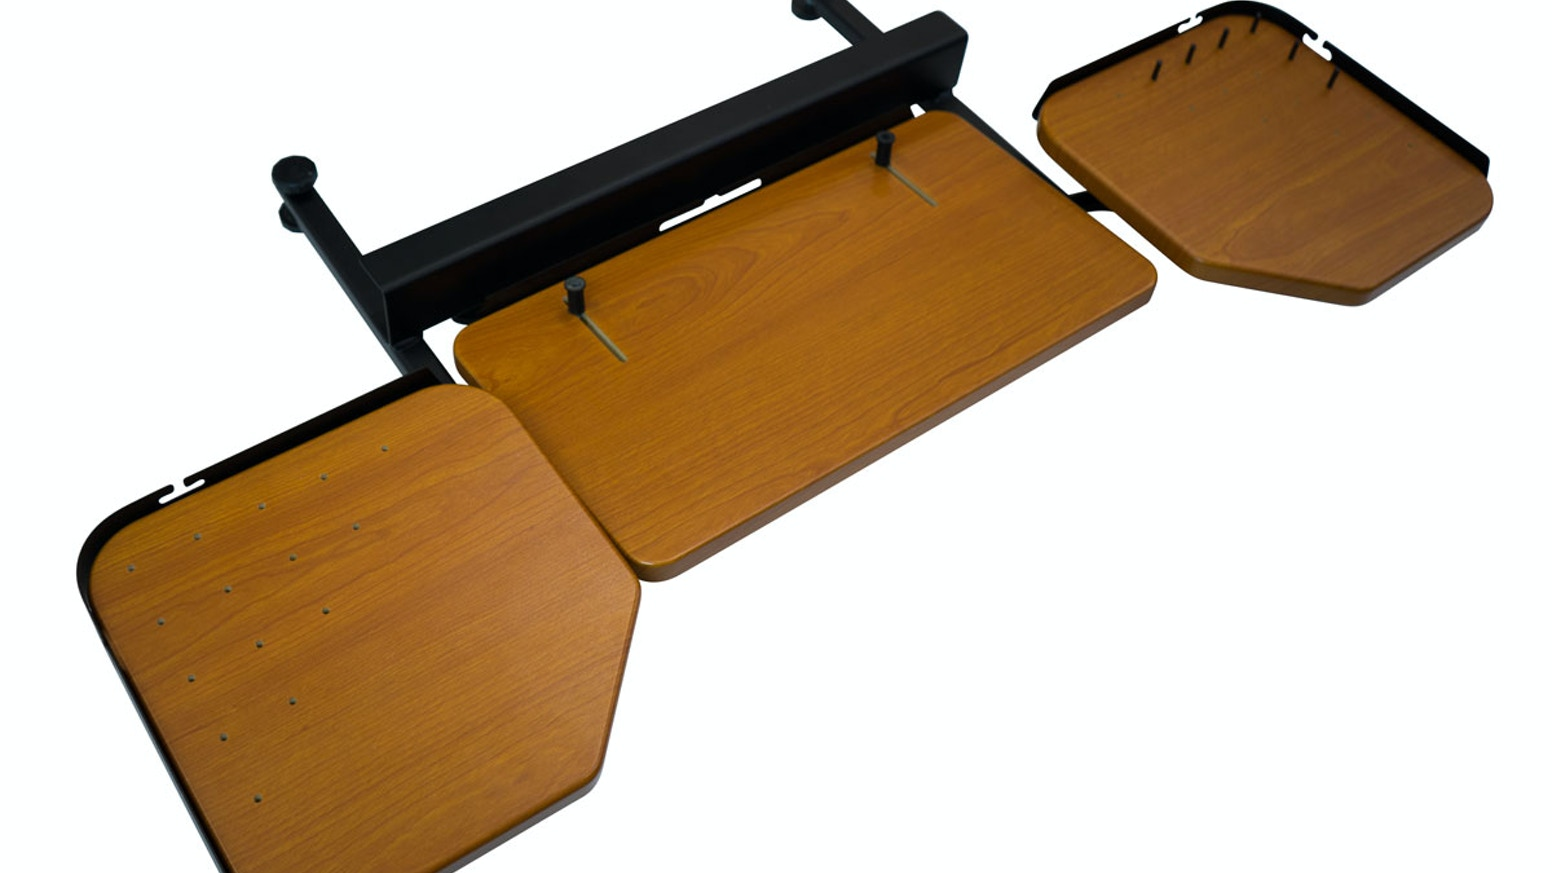 Finally, an ergonomic keyboard tray that works with any standing desk! Infinite ergonomic adjustability. Installs in only 30 seconds.